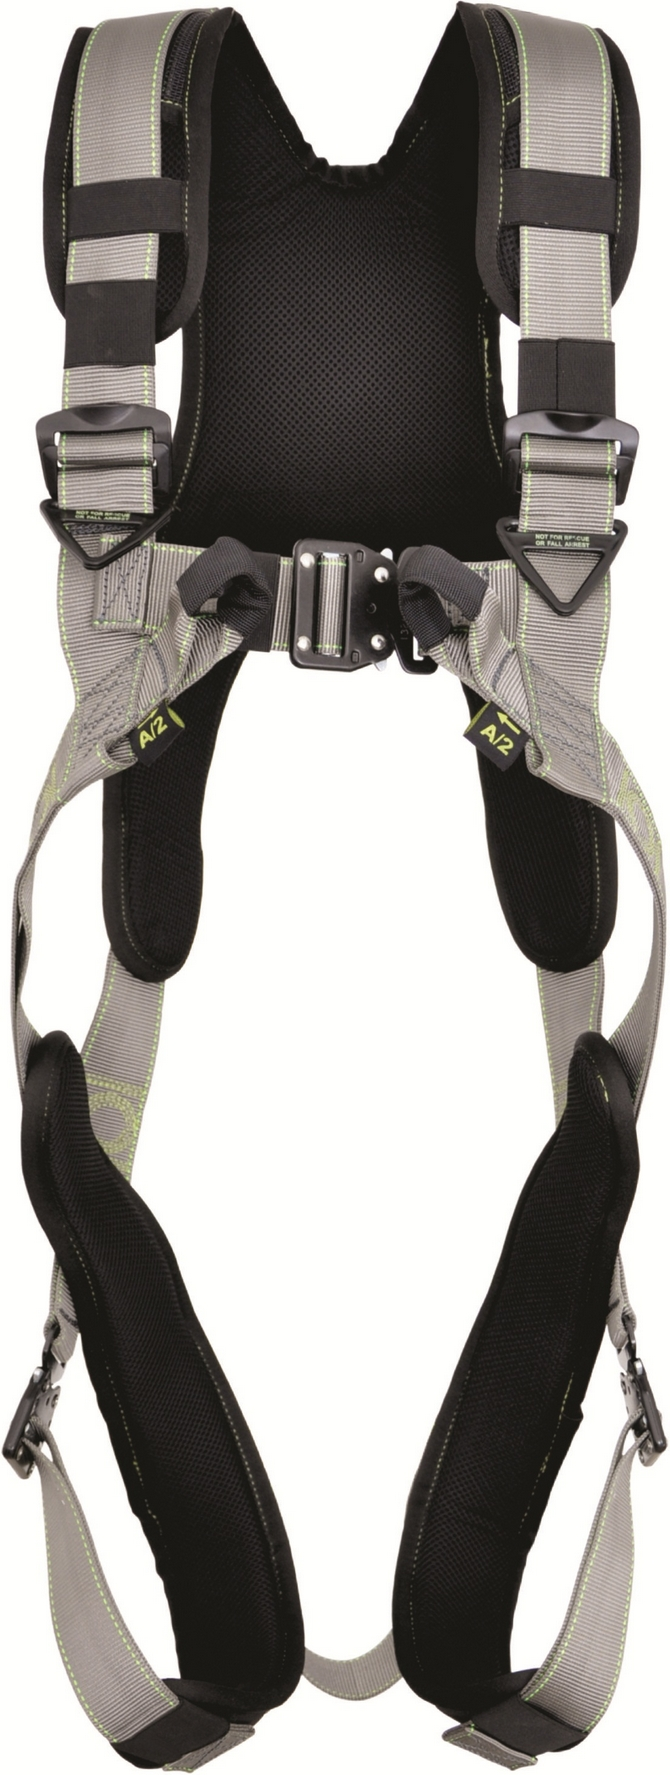 FULL BODY HARNESS FLY'IN 1  BSH009